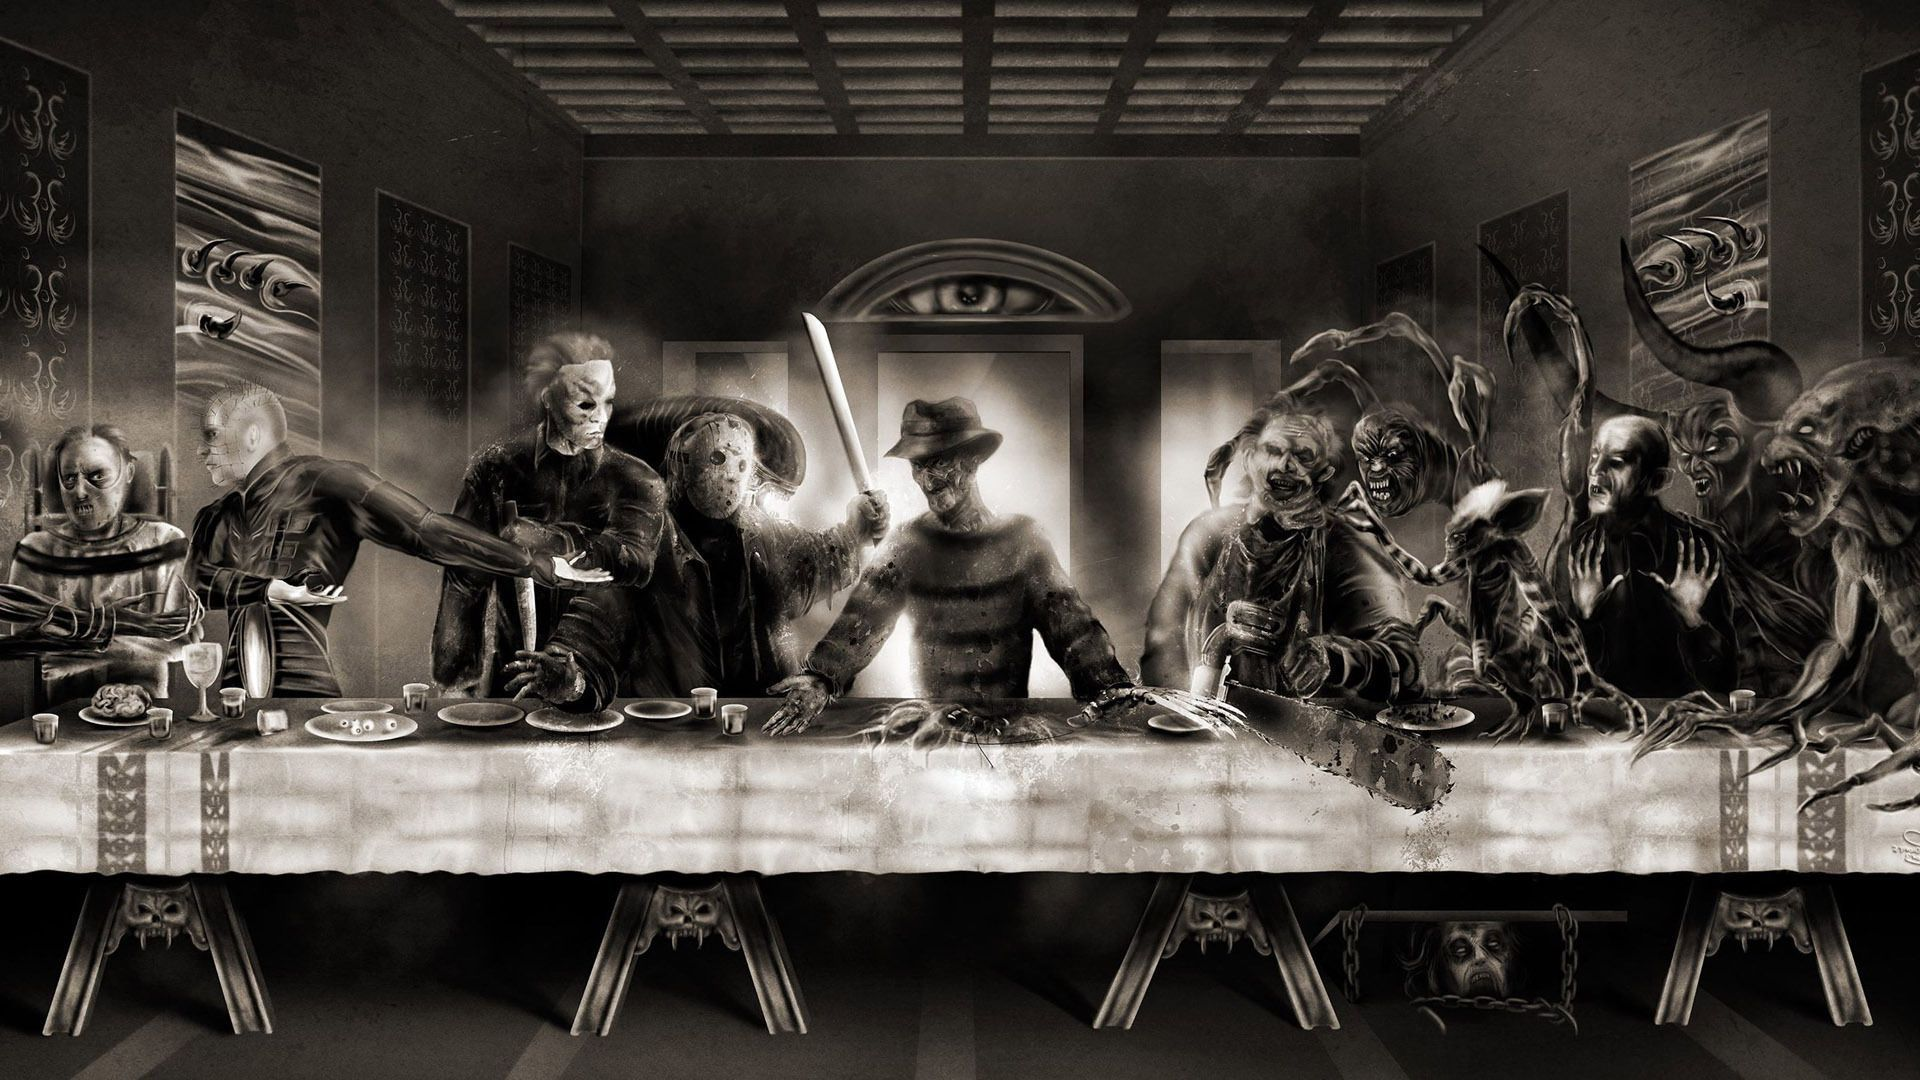 1920x1080 Horror Horror Last Supper Wallpaper 18864 Creatures Of The Horror Movie Art Horror Movies Funny Last Supper